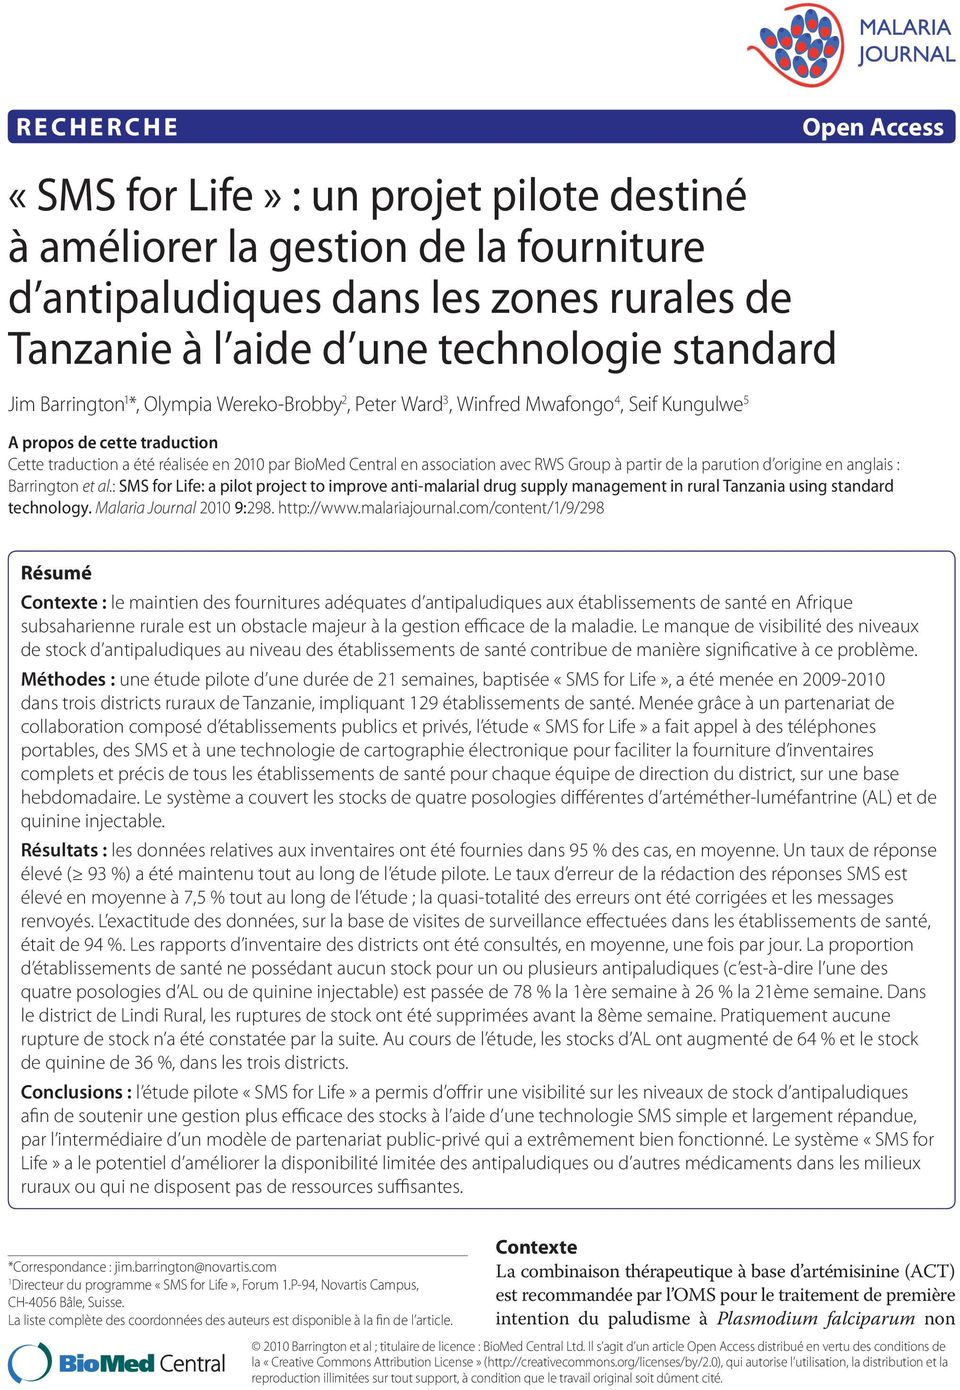 Group à partir de la parution d origine en anglais : Barrington et al.: SMS for Life: a pilot project to improve anti-malarial drug supply management in rural Tanzania using standard technology.